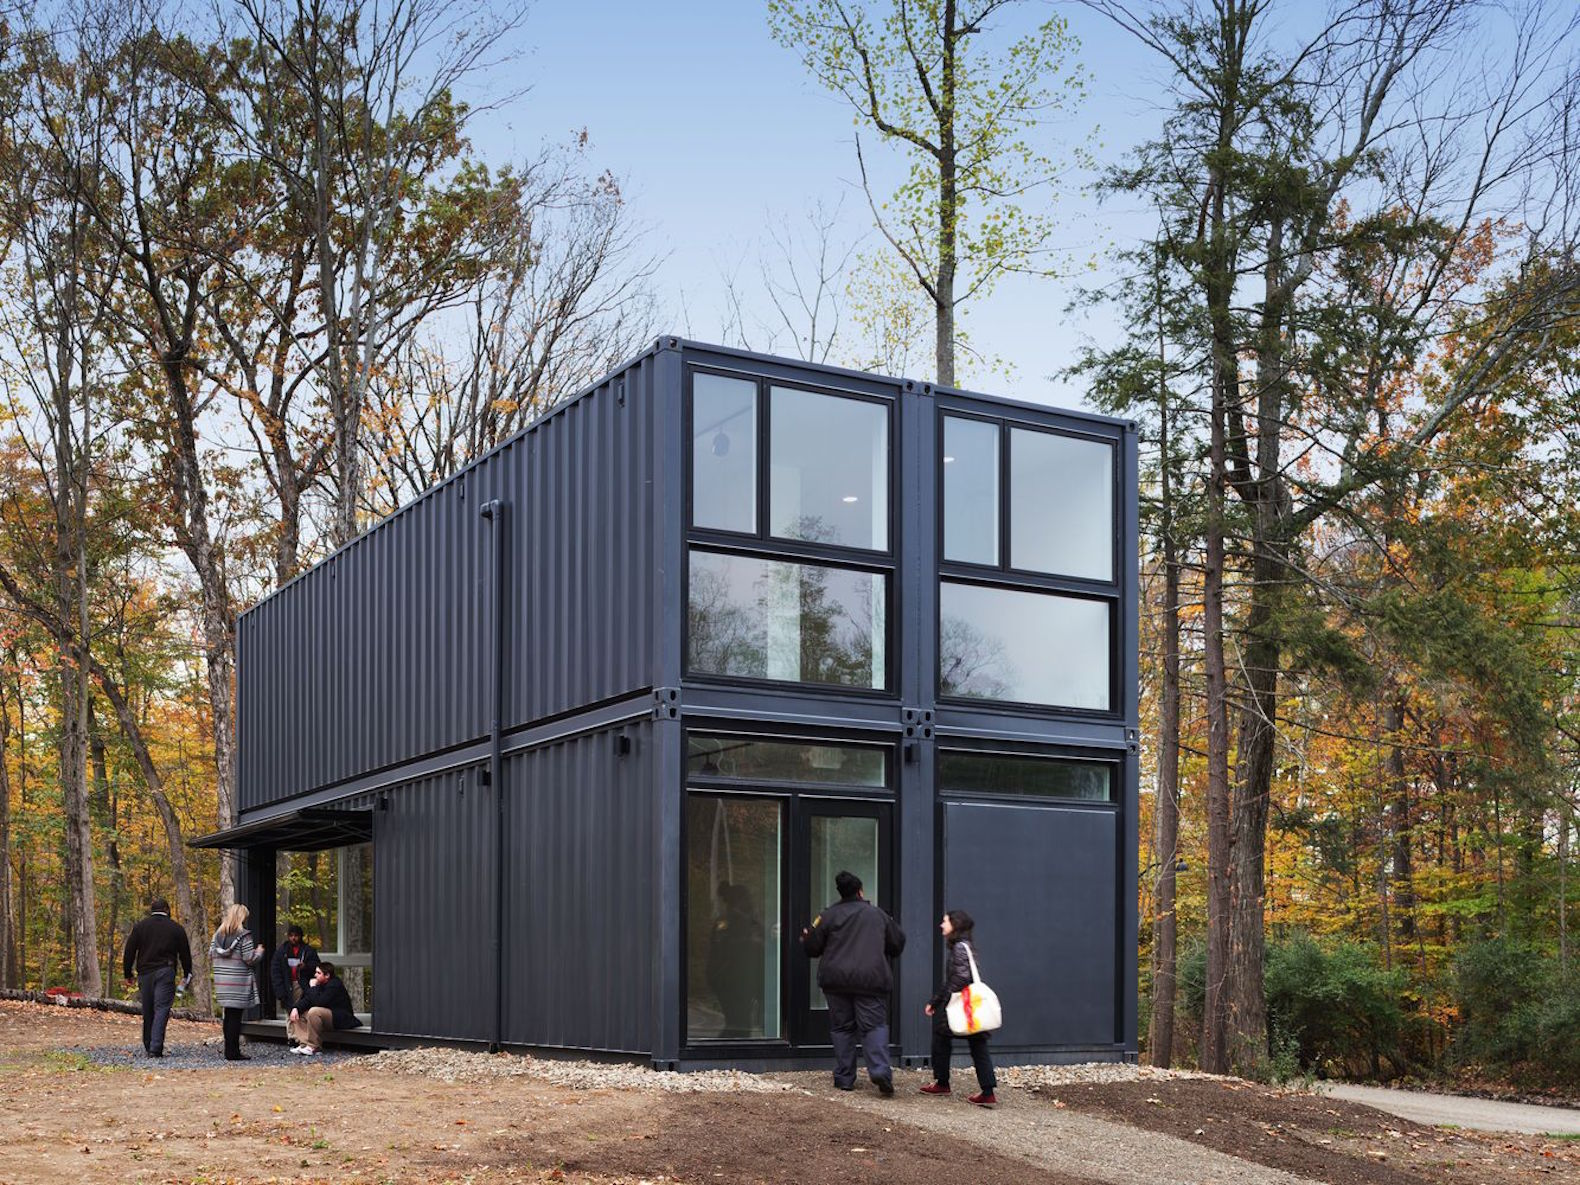 Media lab built from recycled shipping containers pops up in half a day